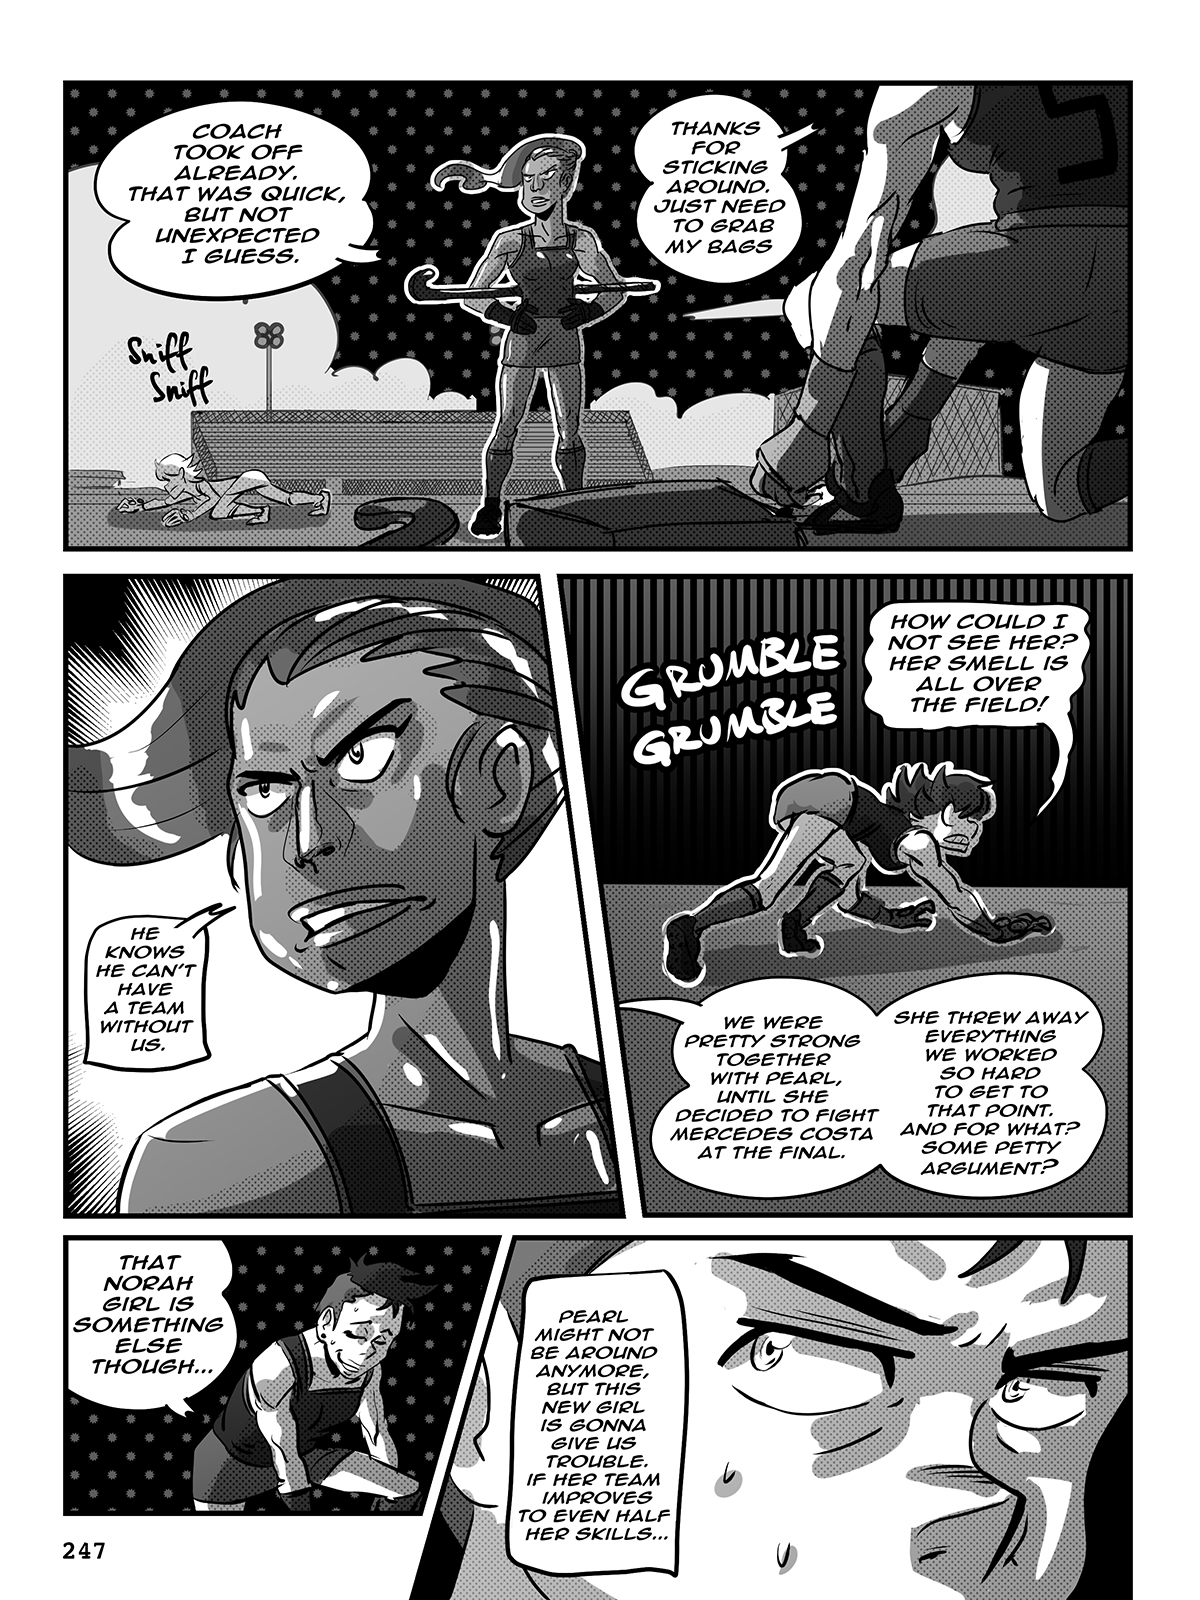 Hockey, Love, & GUTS! – Chapter 9 – Page 247